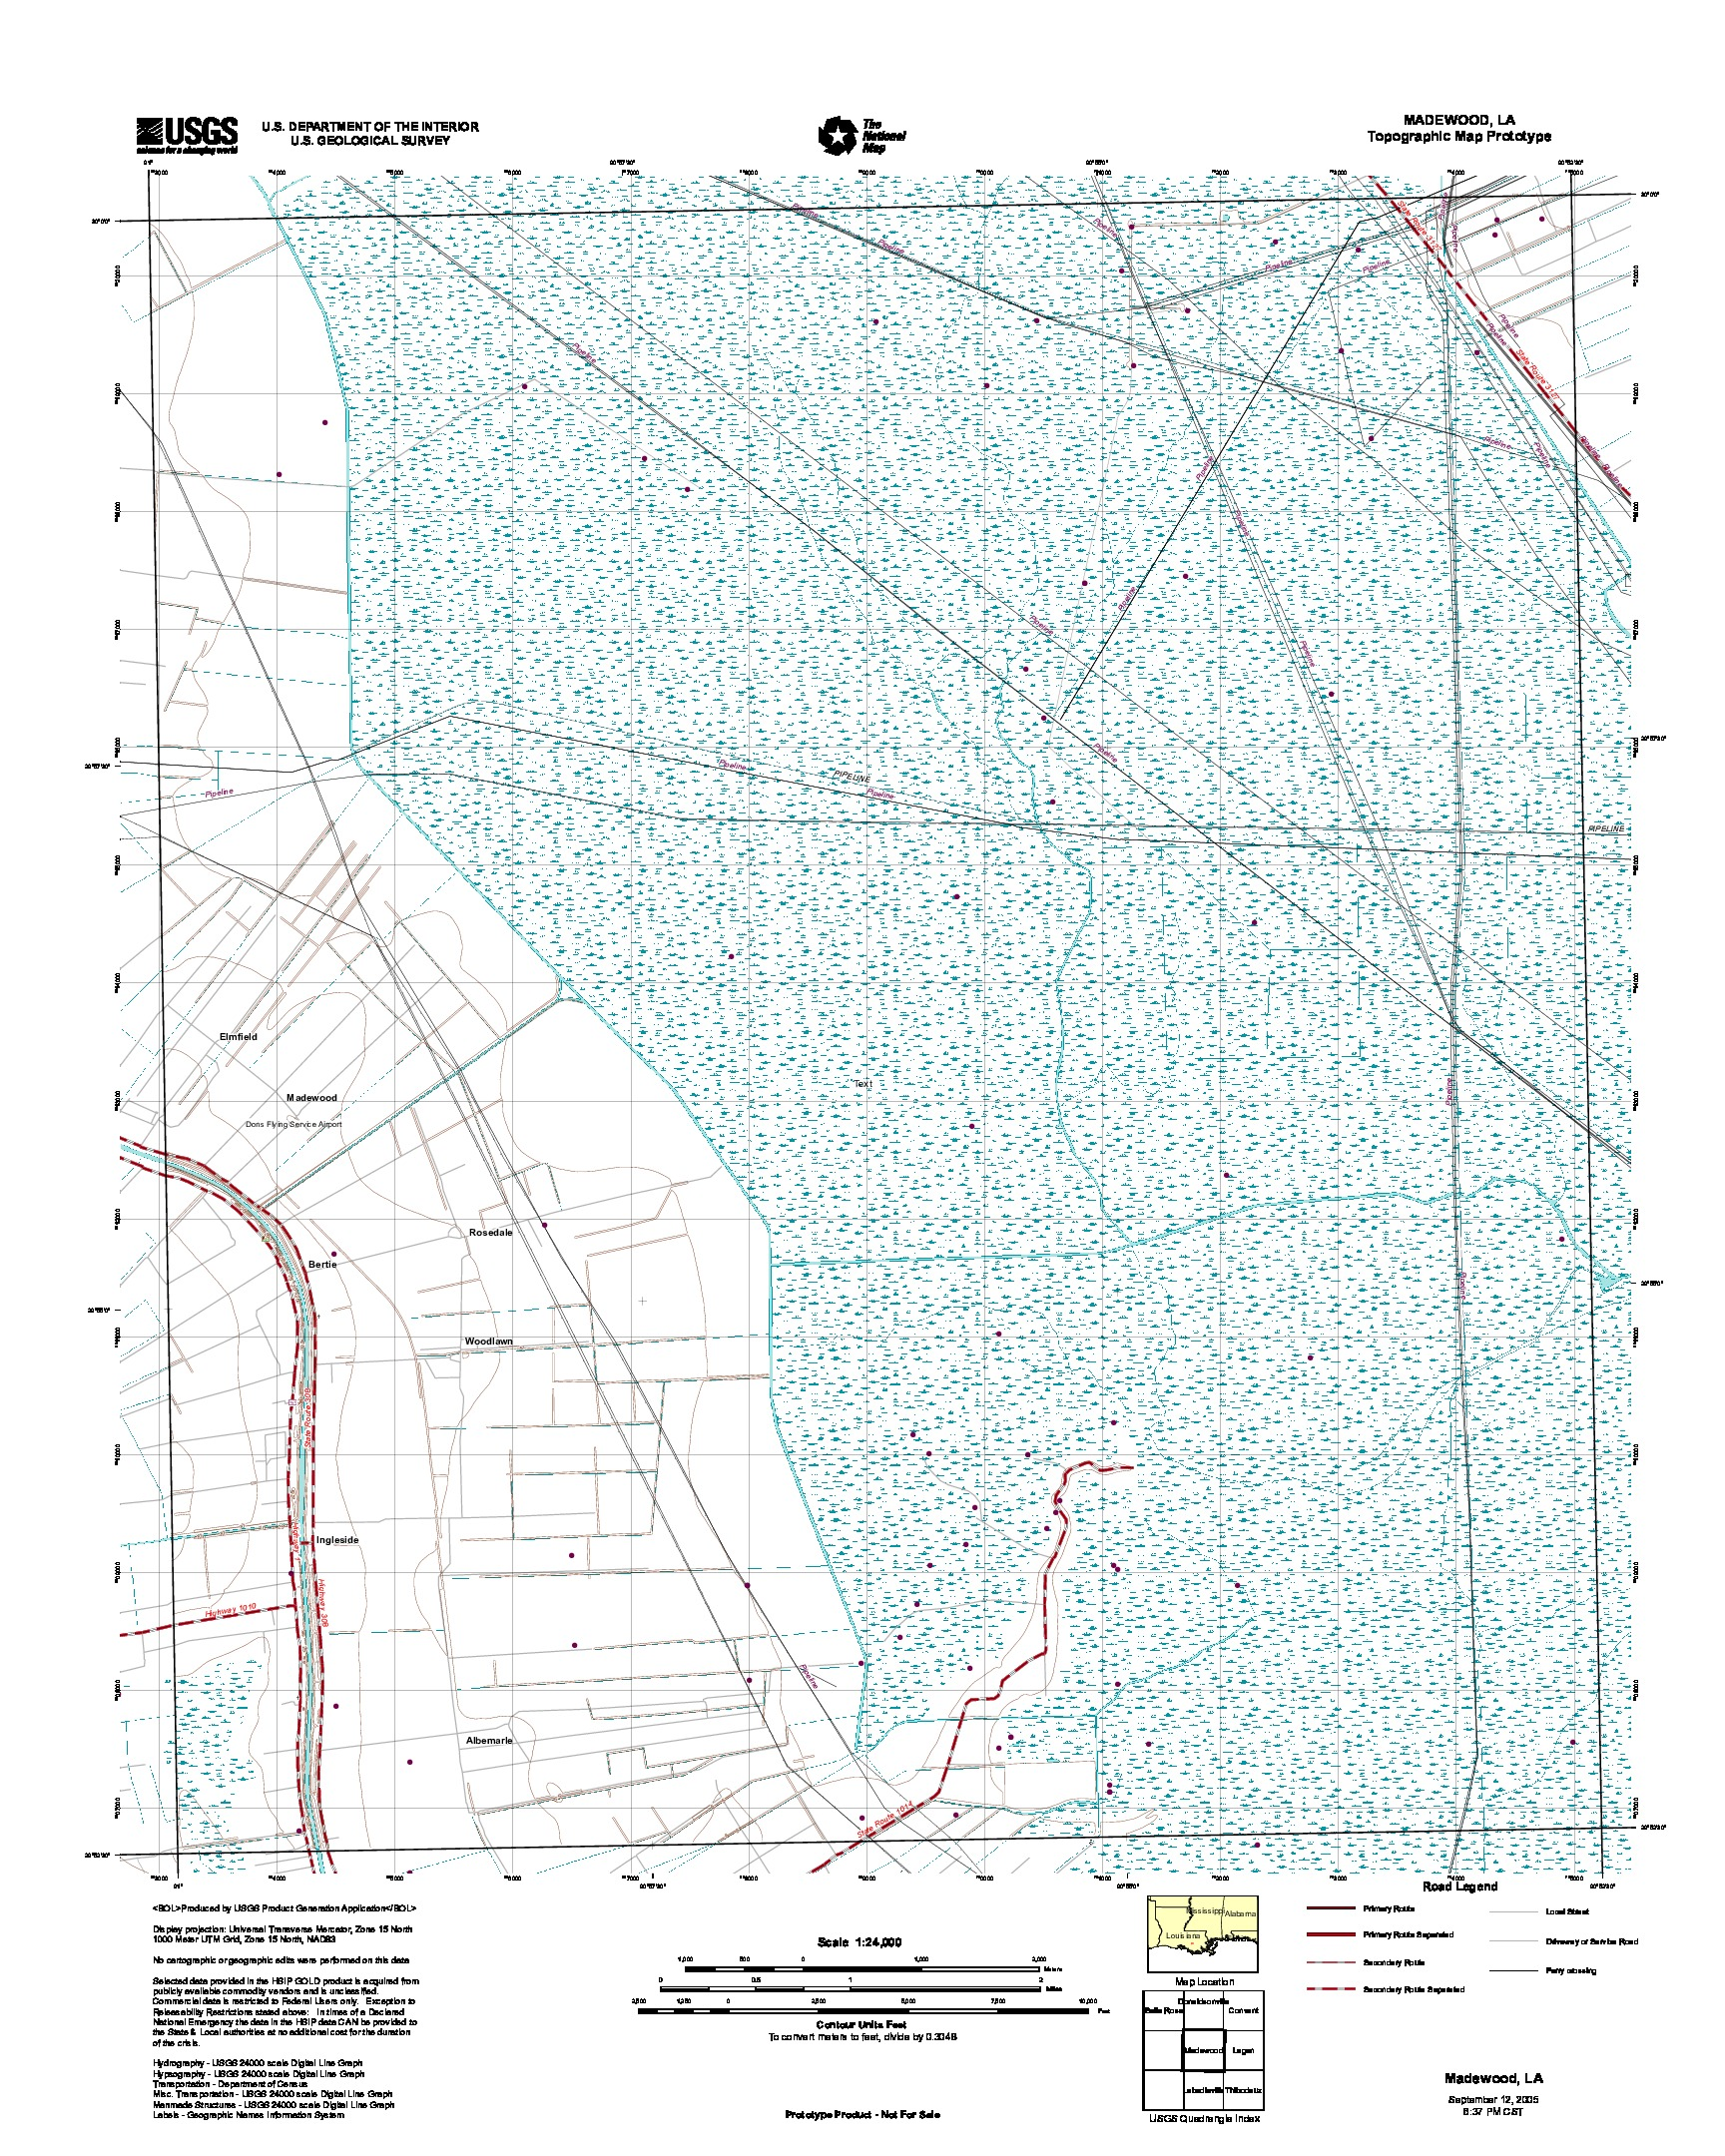 Madewood, Topographic Map Prototype, Louisiana, United States, September 12, 2005